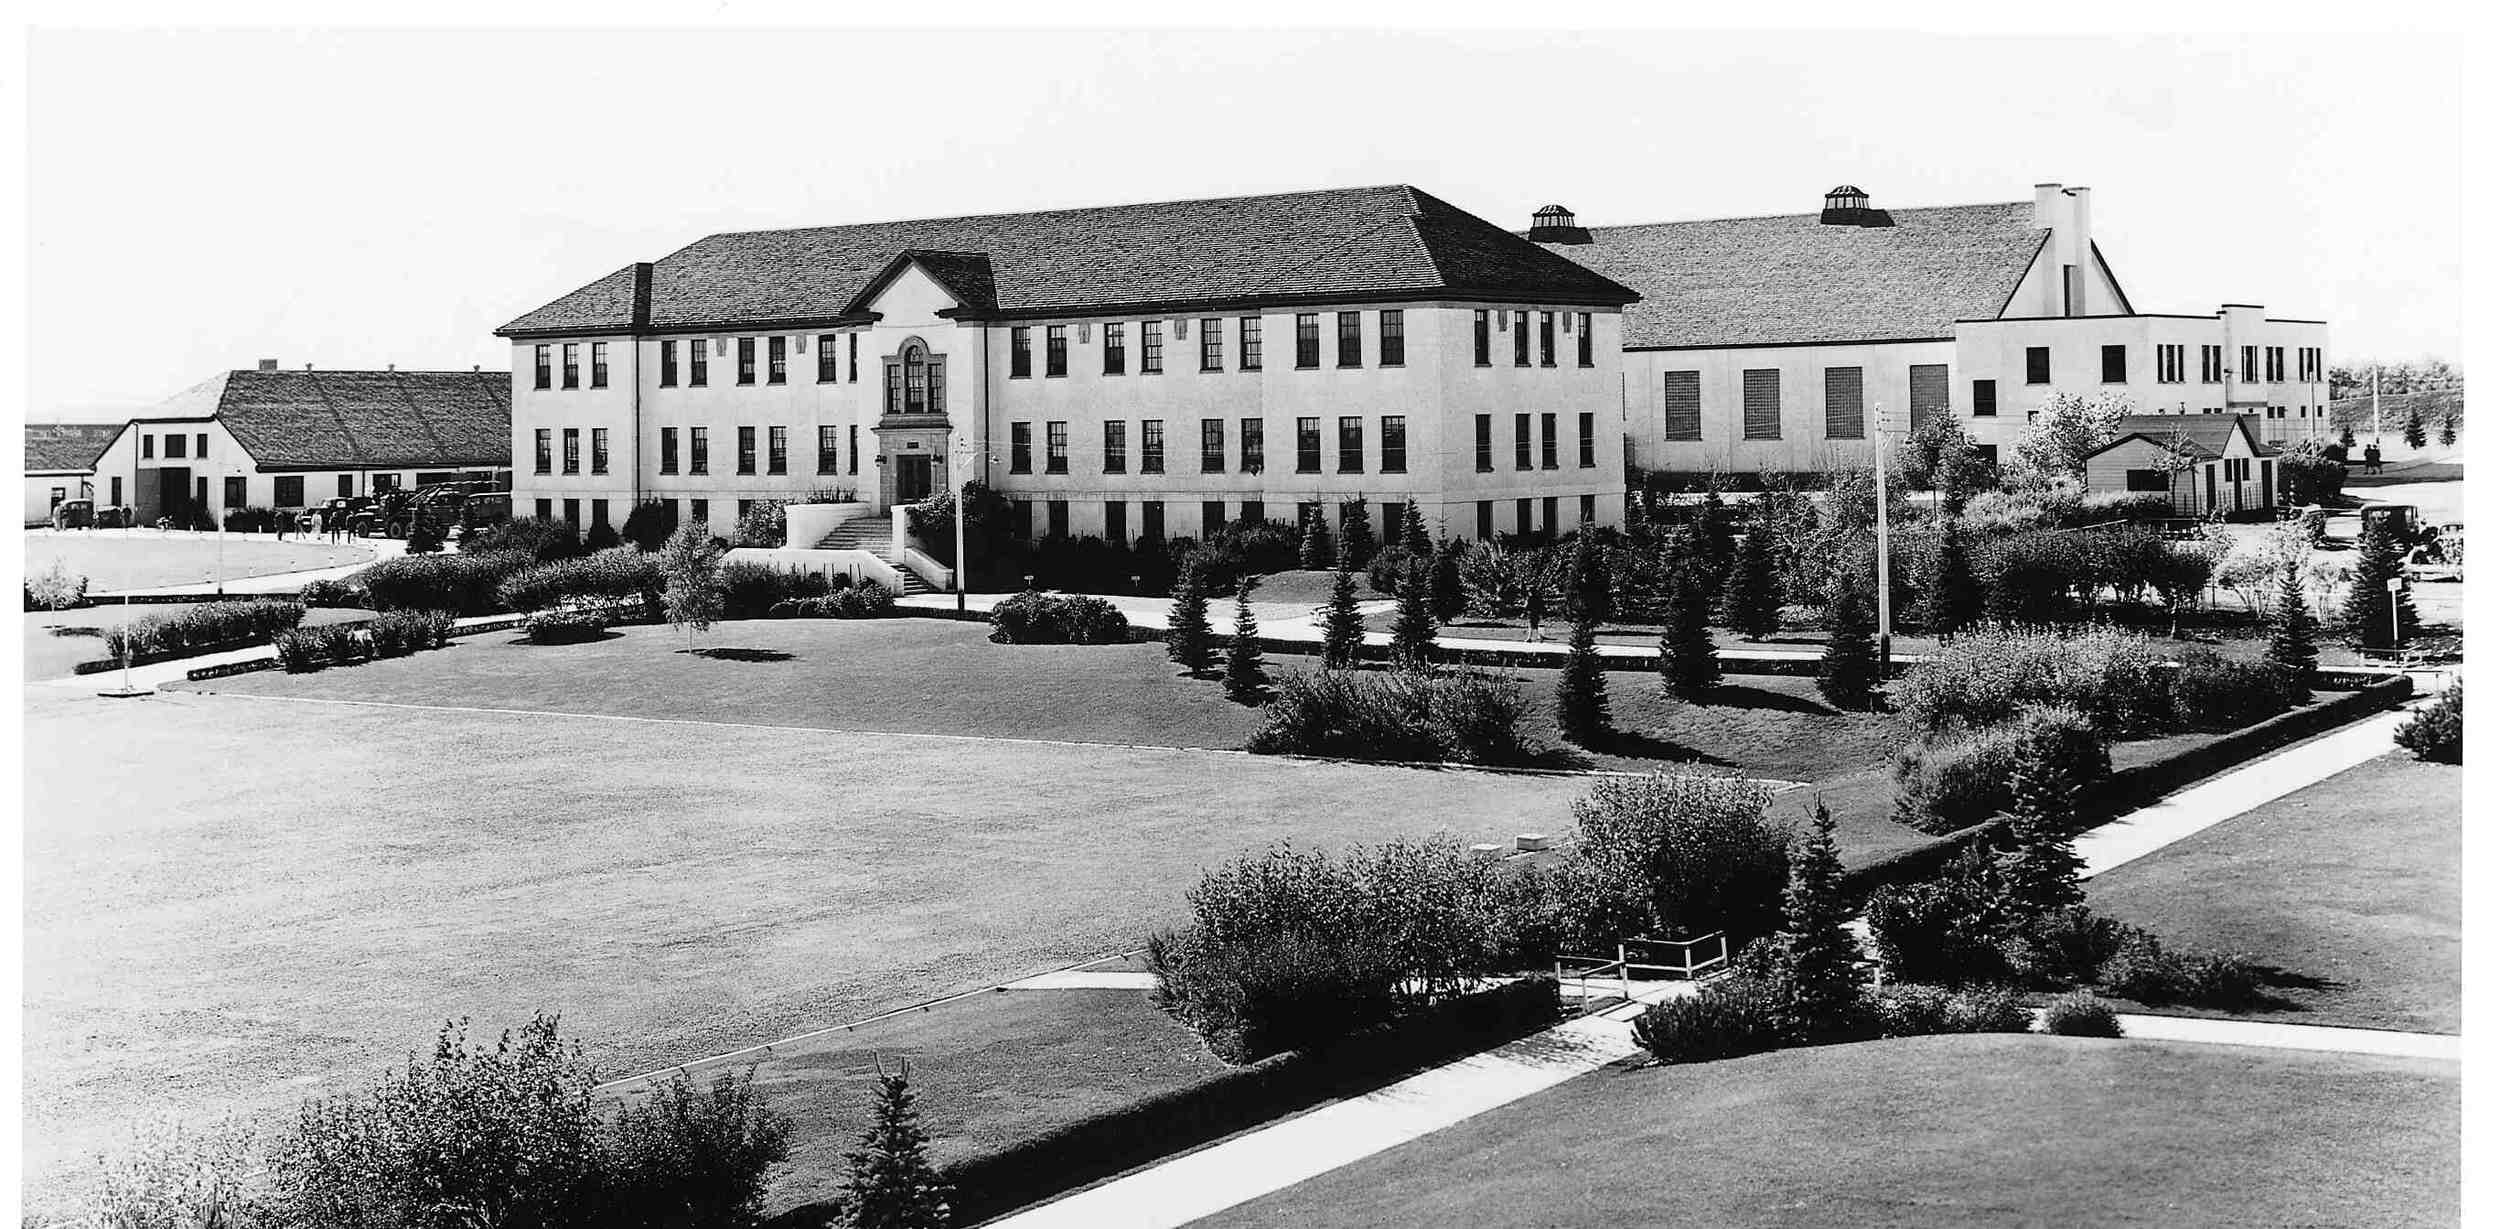 Currie Barracks circa 1941 (photo credit: Canada Lands Corporation)